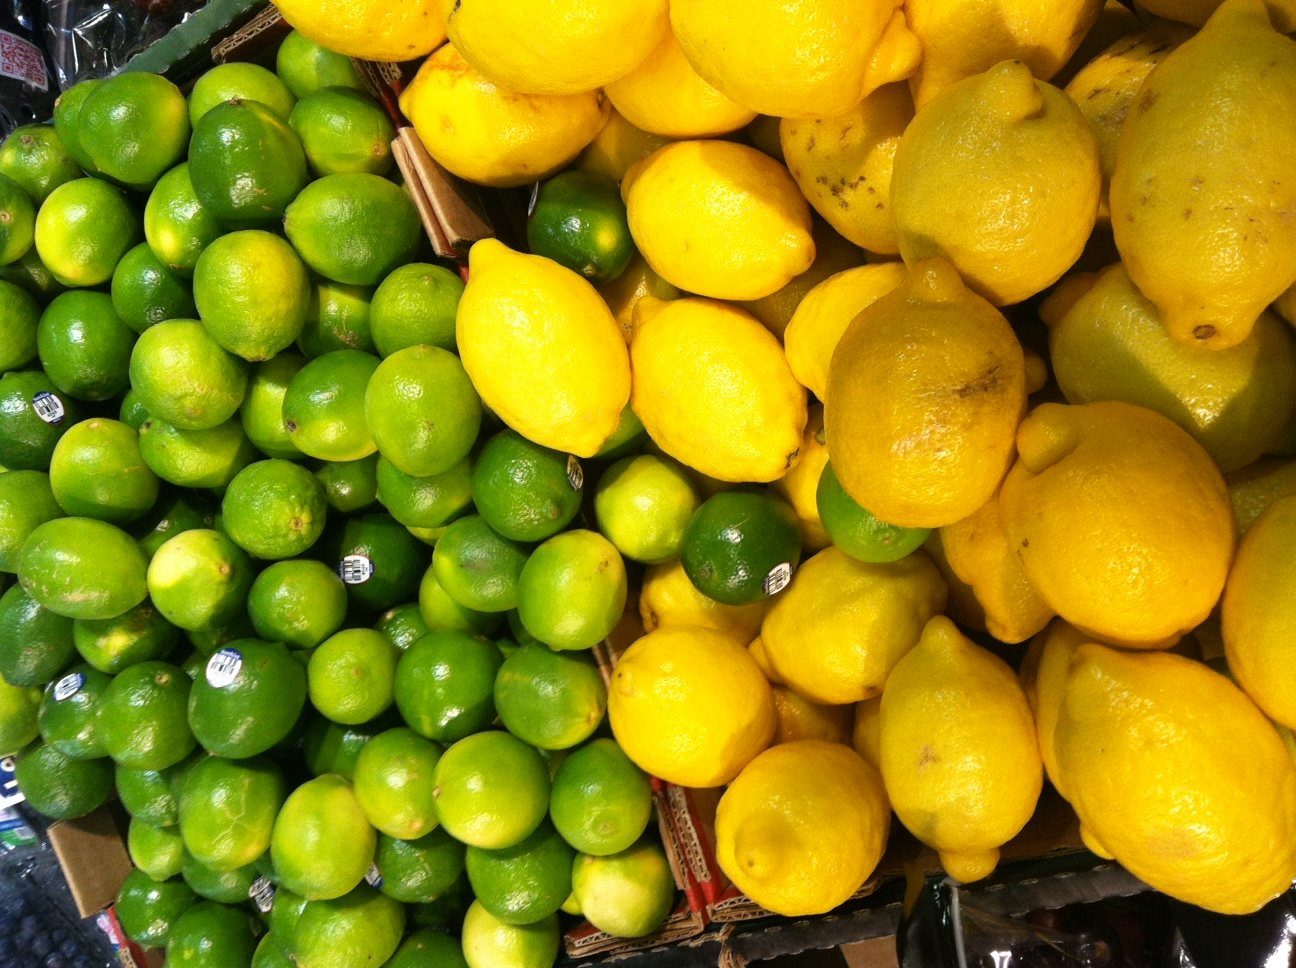 Lemons and Limes in the United States (David Knowlton)